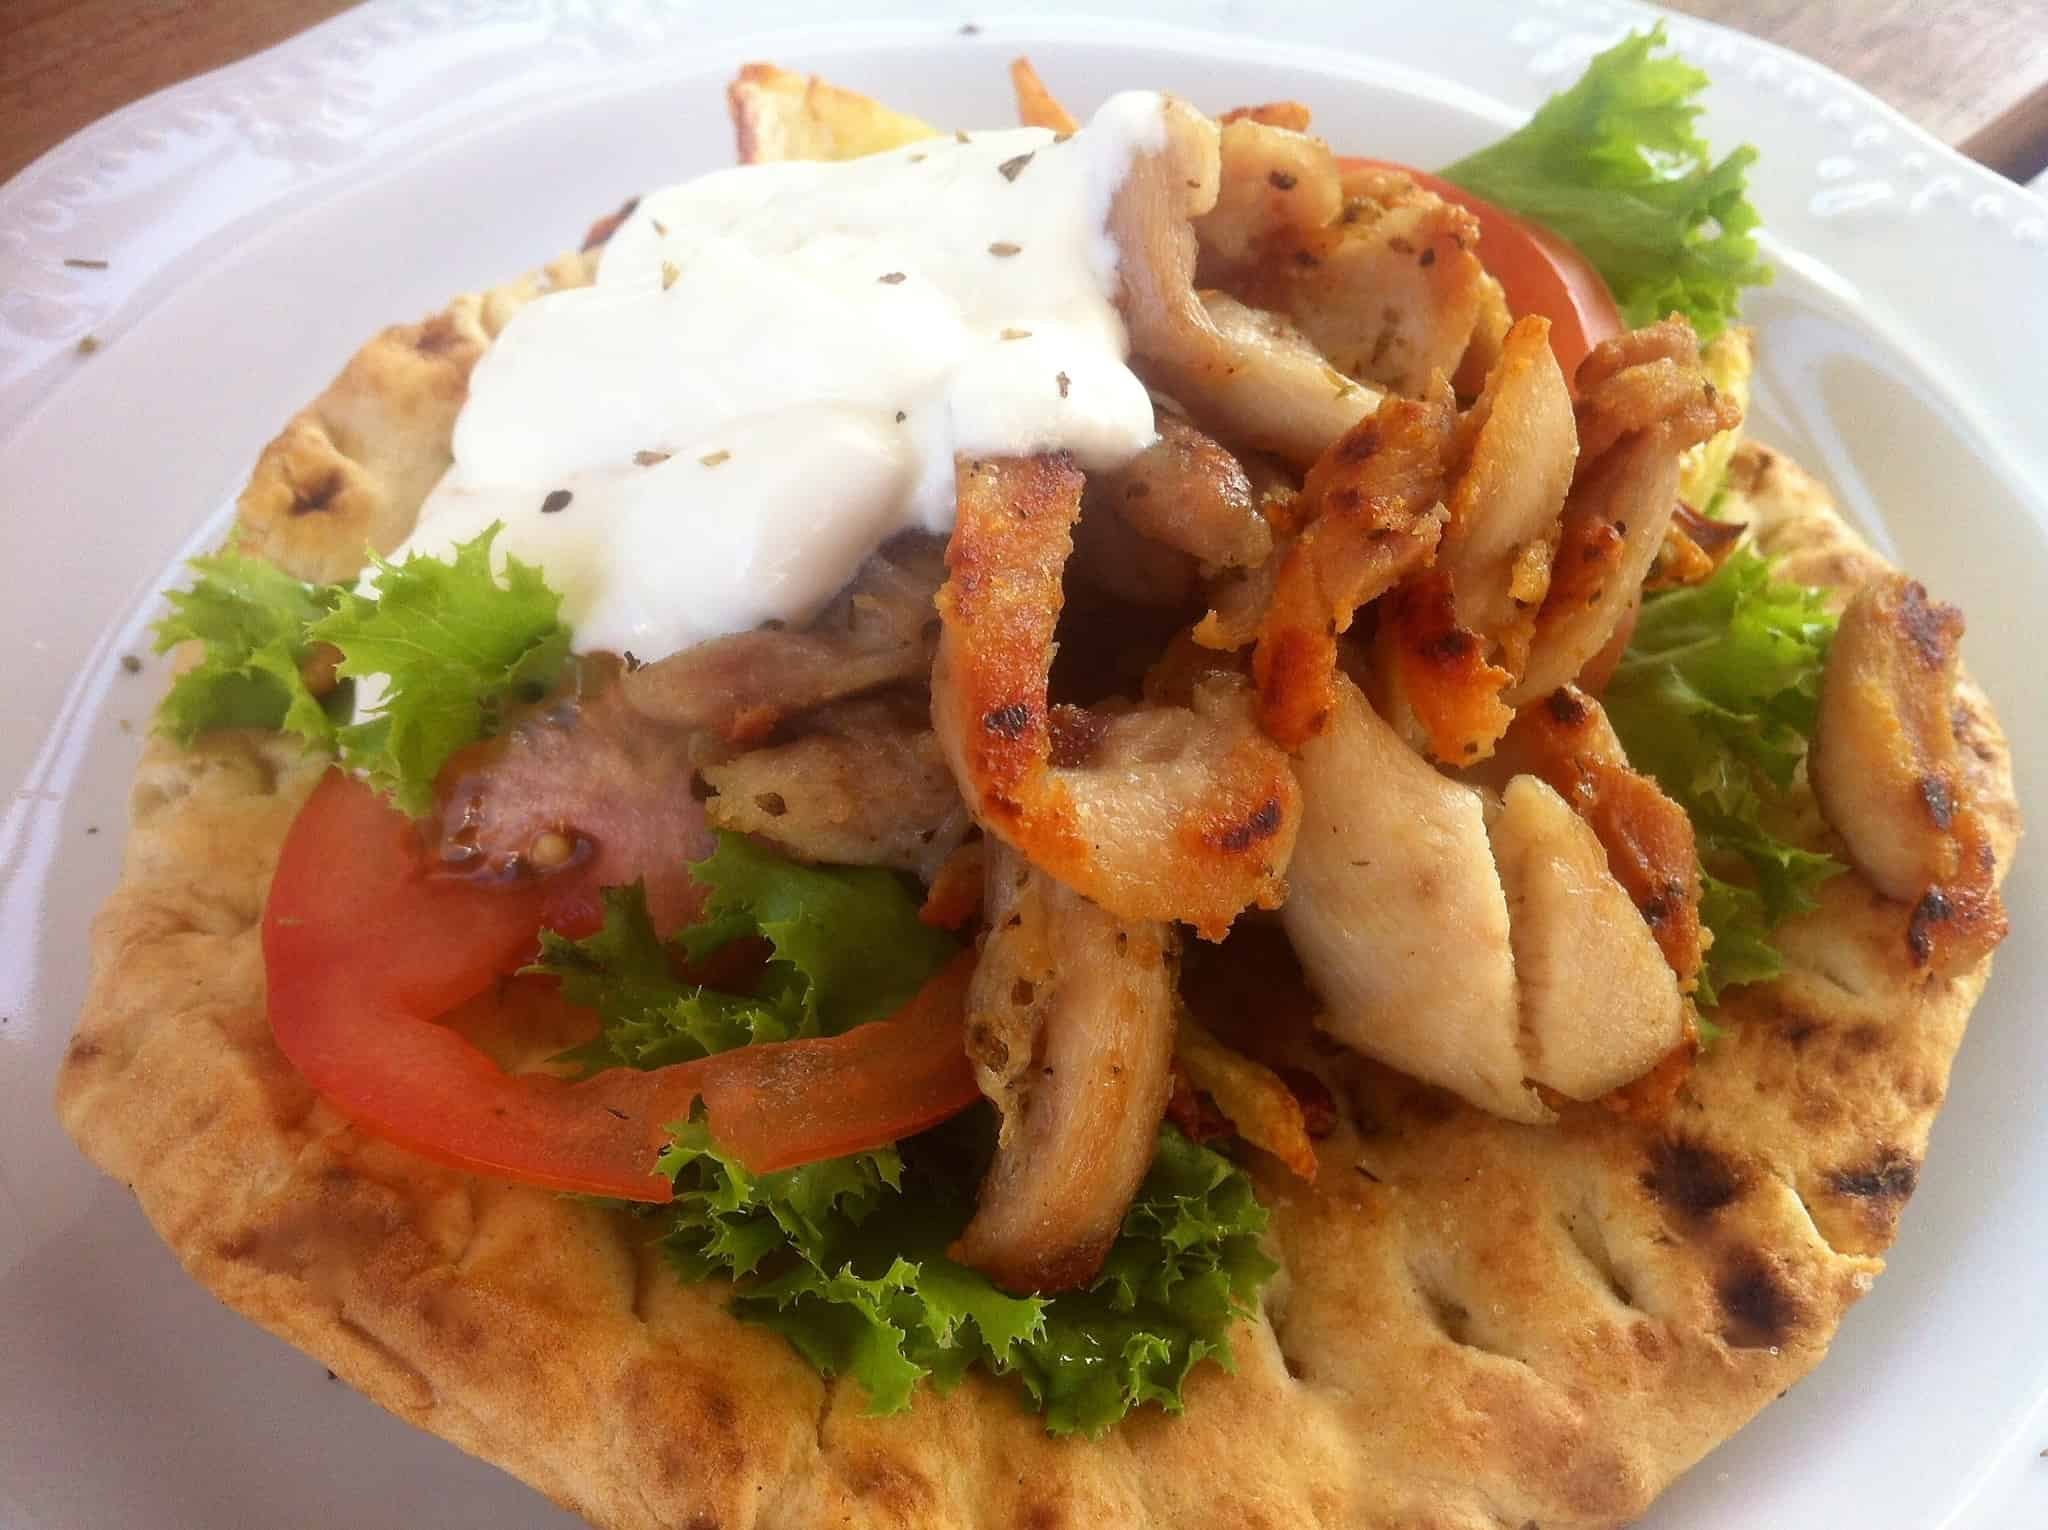 Best Homemade Chicken Gyros recipe! - My Greek Dish